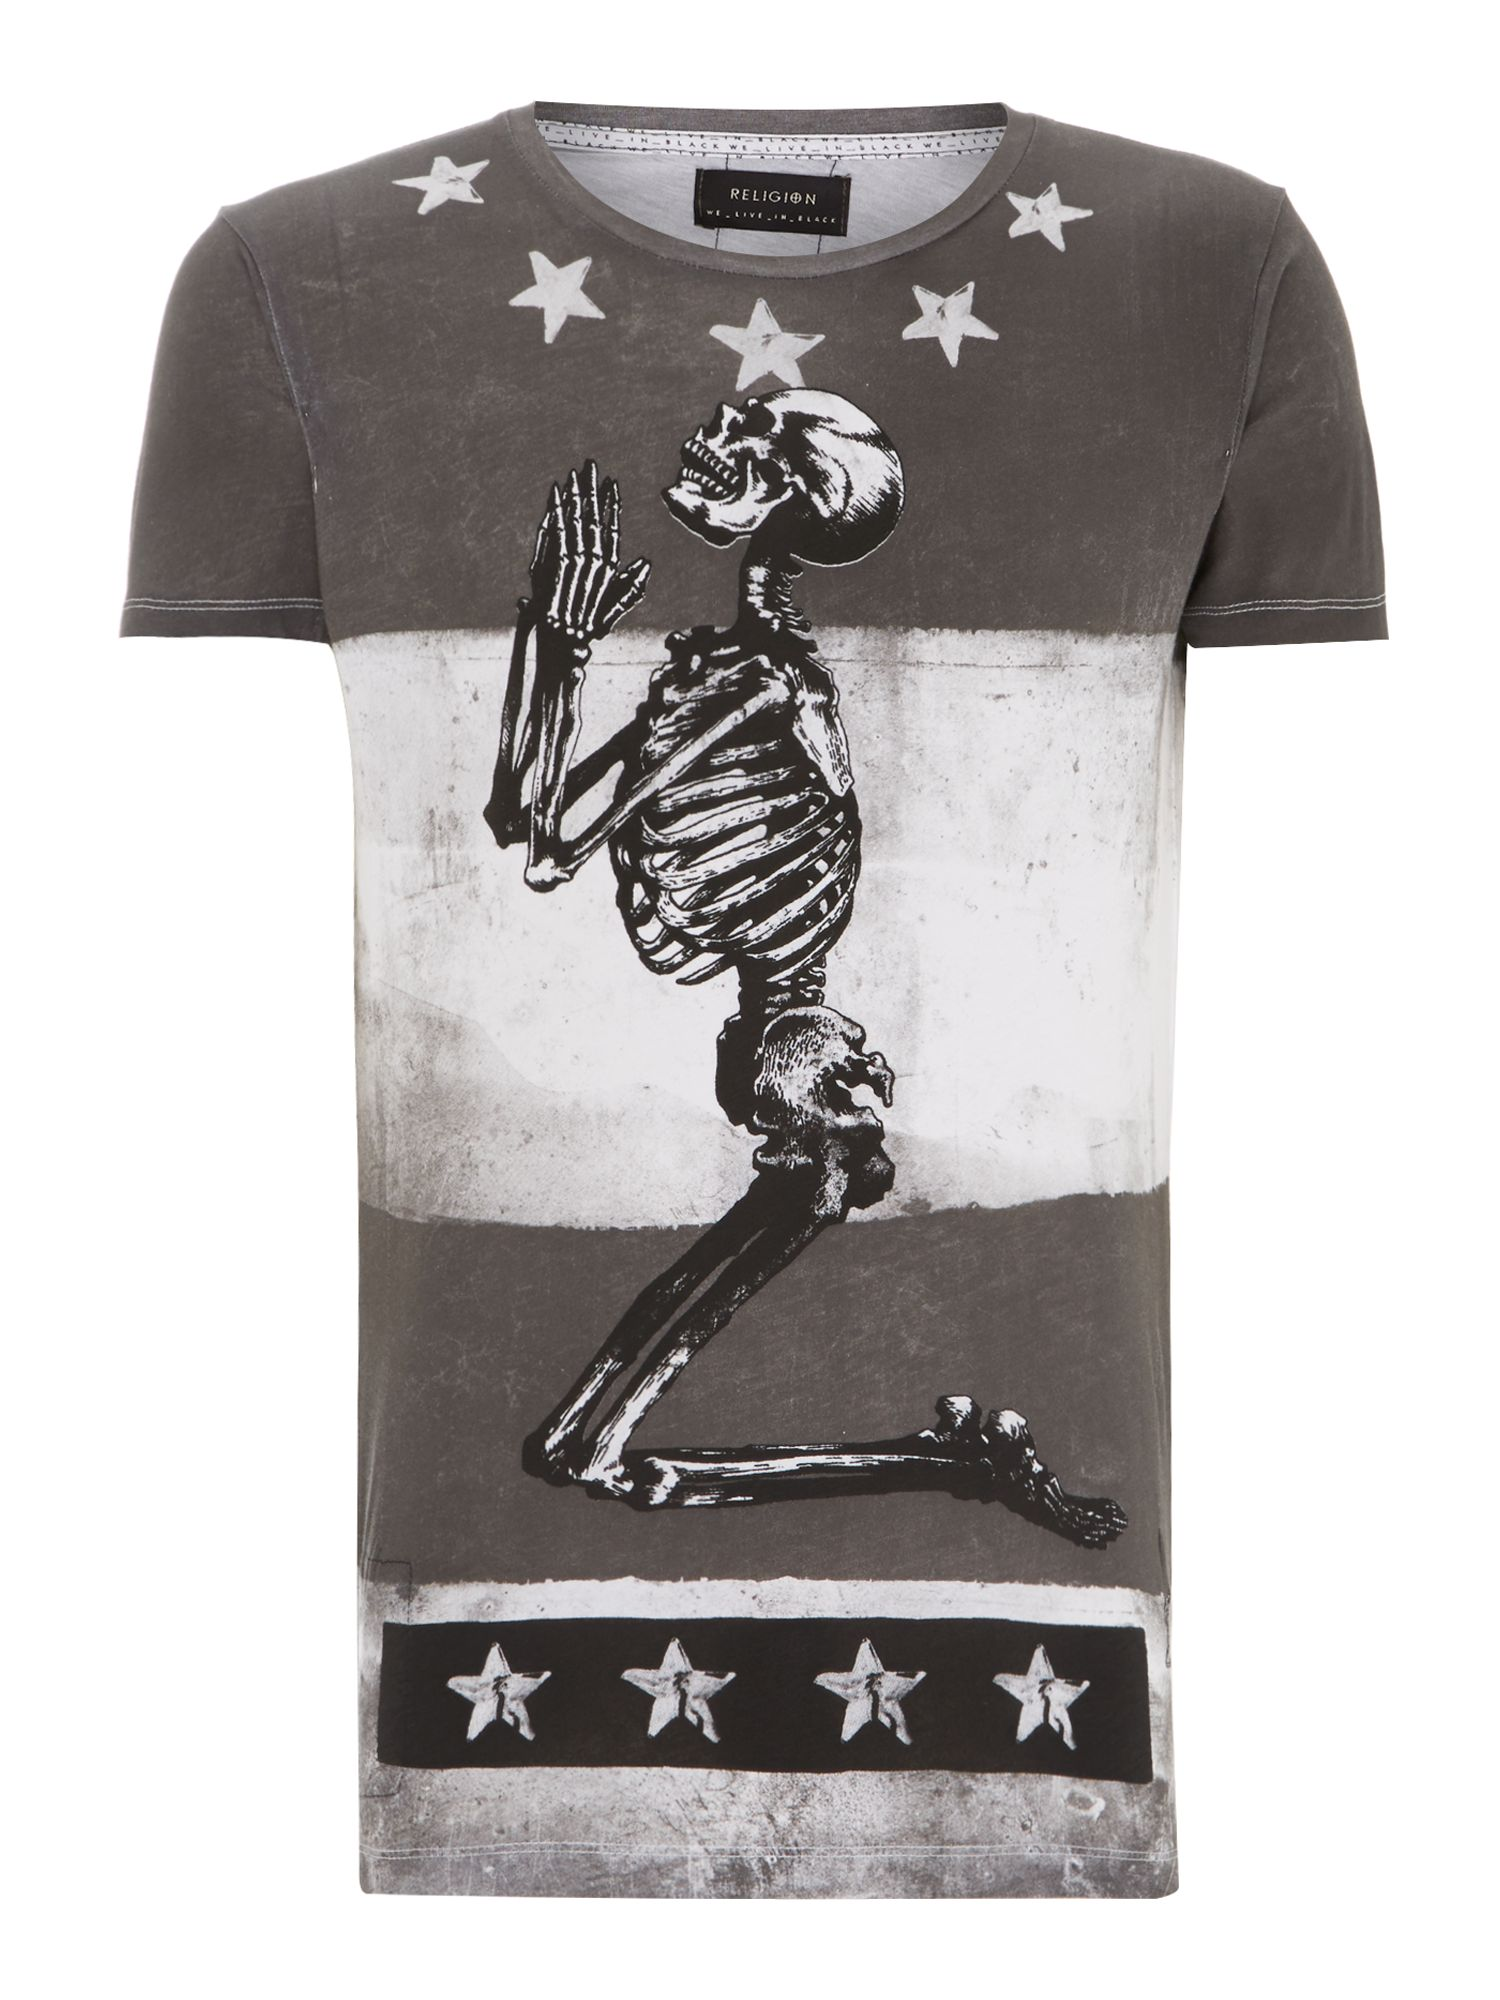 Praying skeleton graphic t shirt